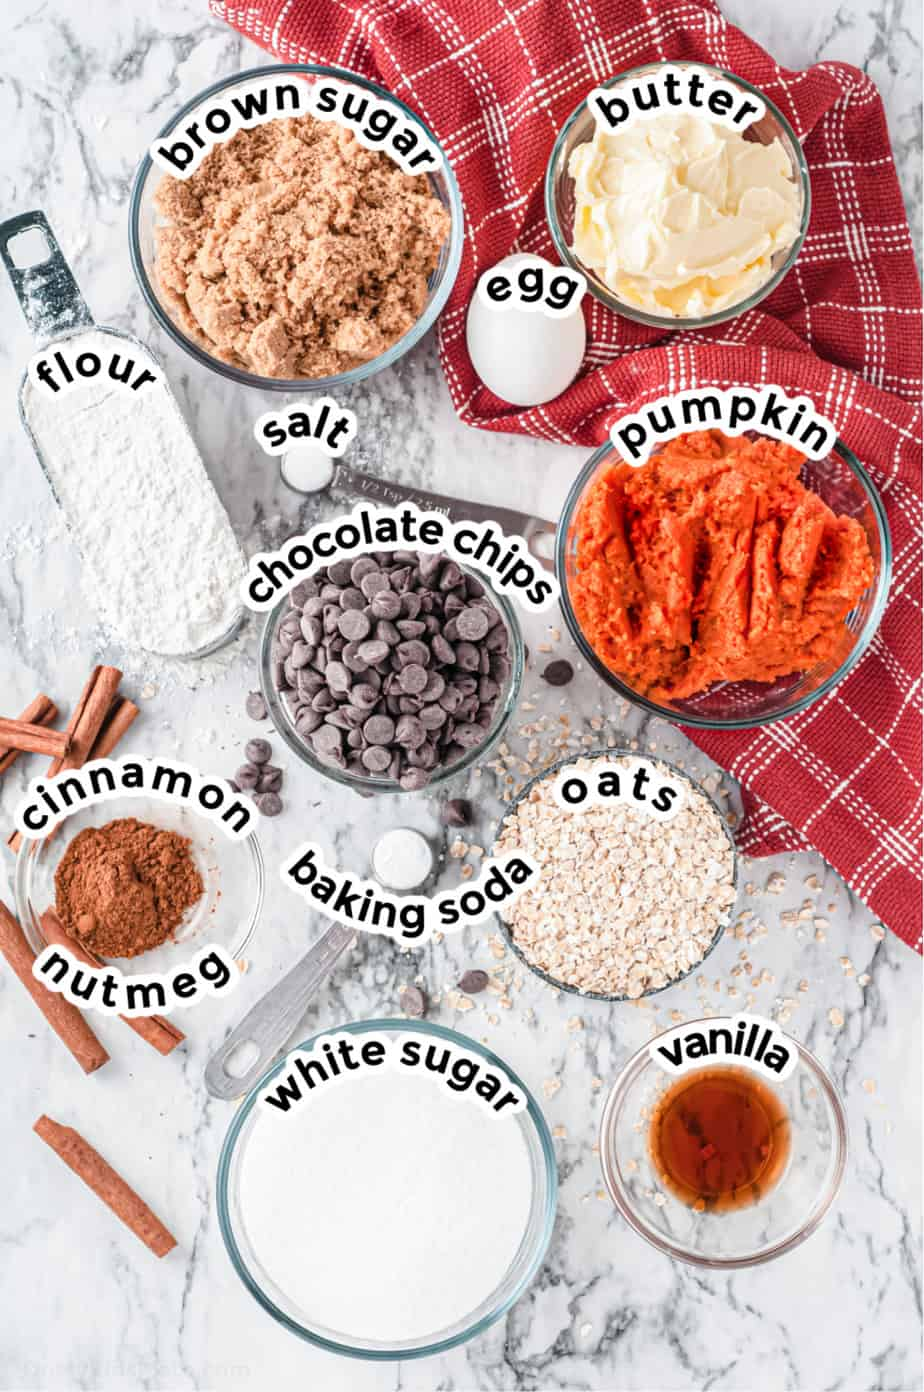 Ingredients for pumpkin oatmeal cookies with chocolate chips